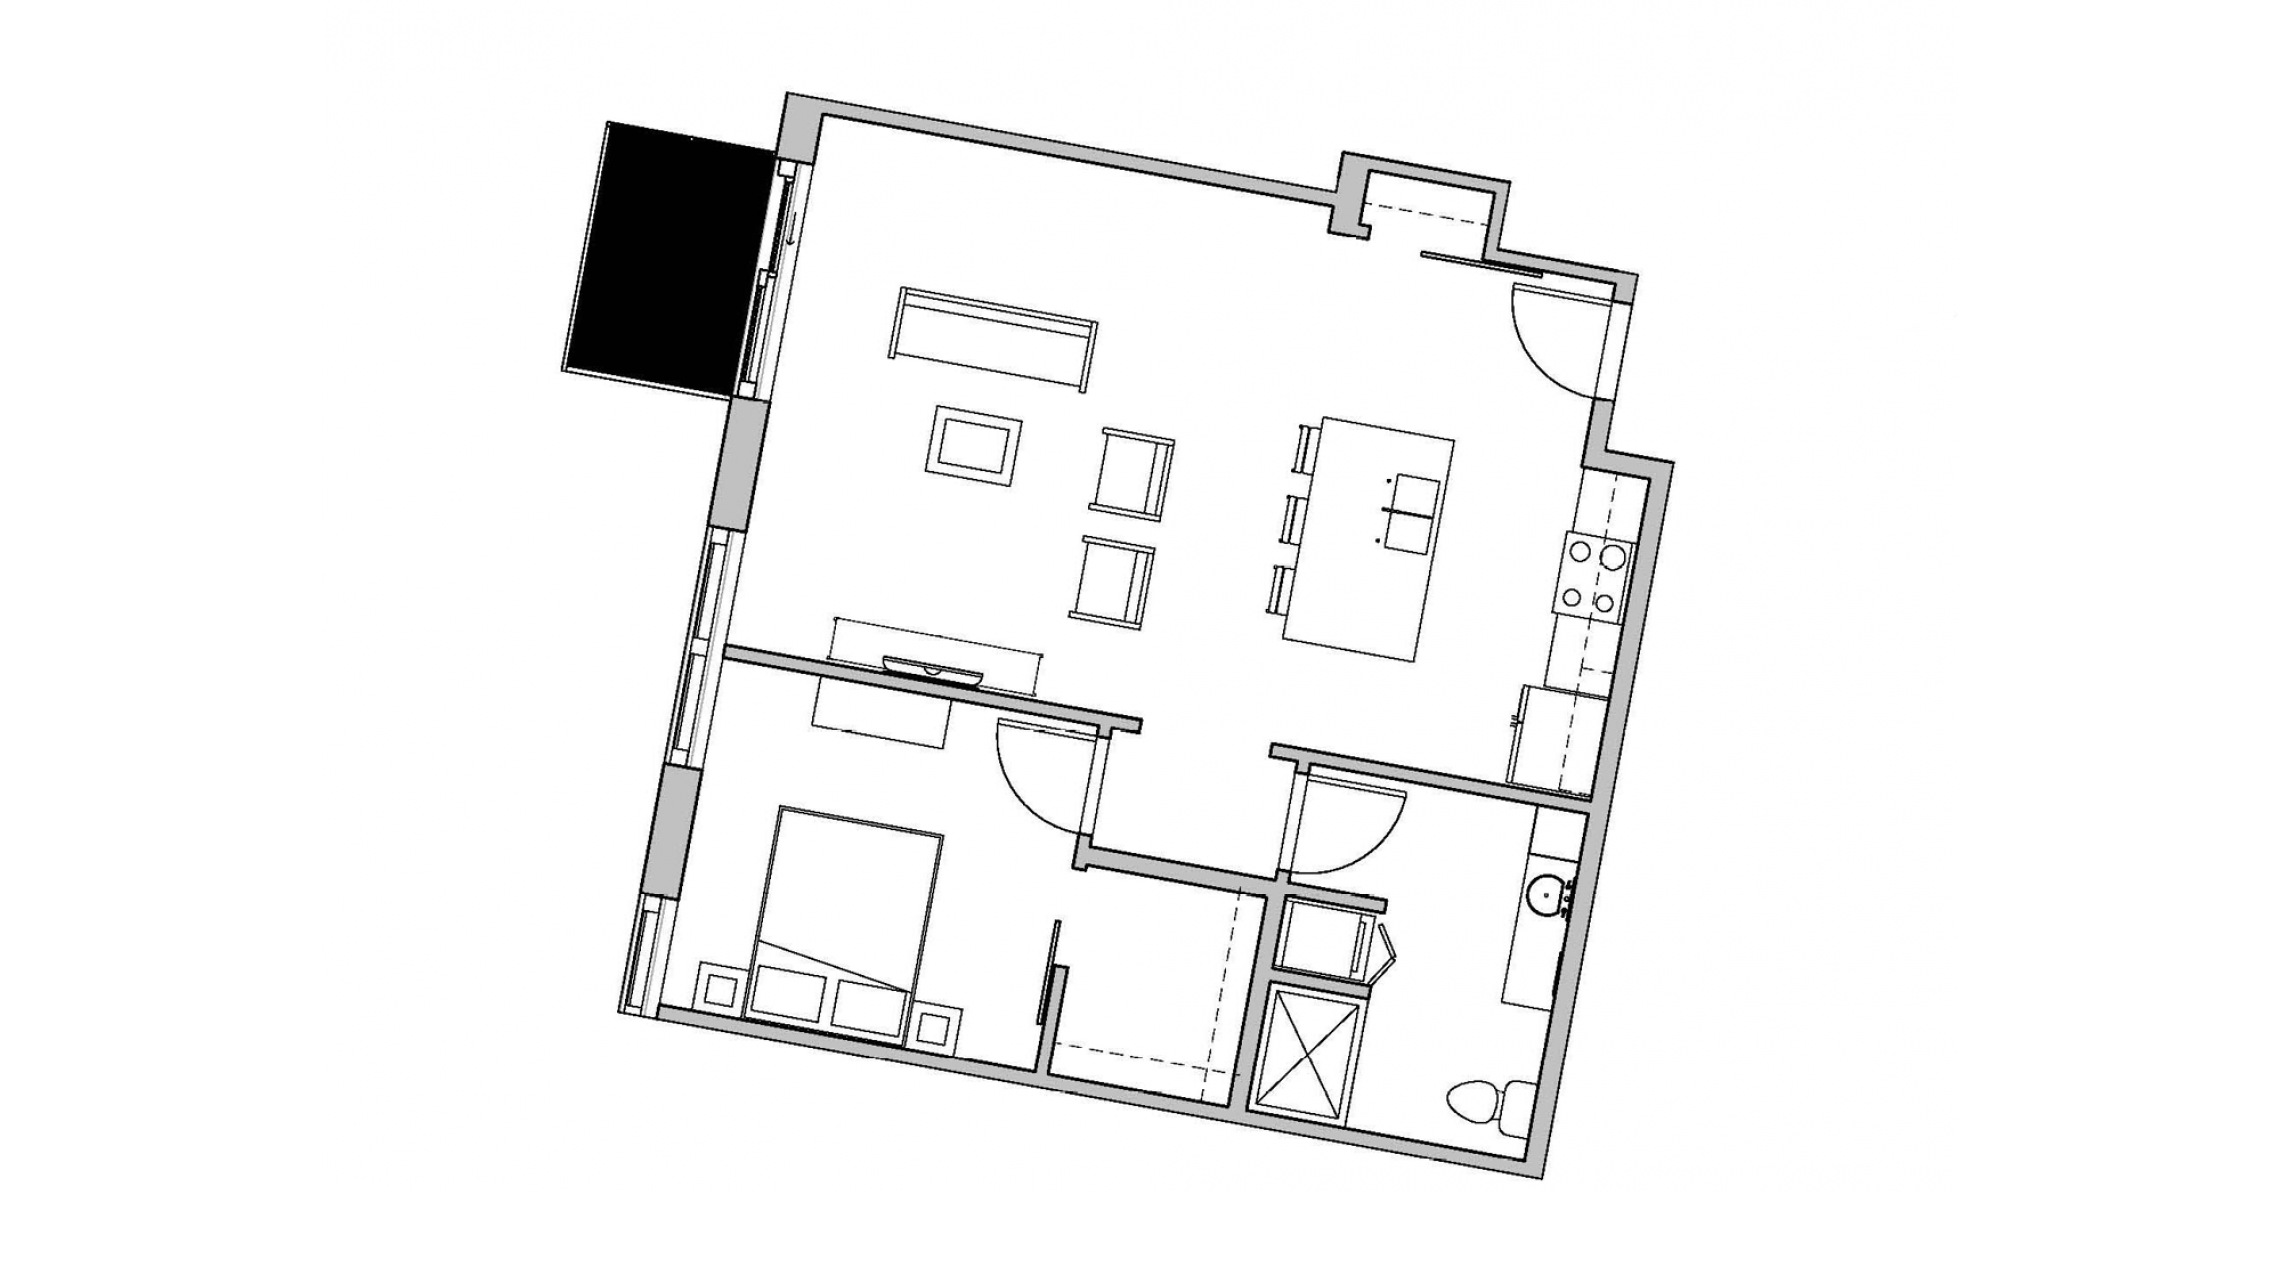 ULI Seven27 336 - One Bedroom, One Bathroom